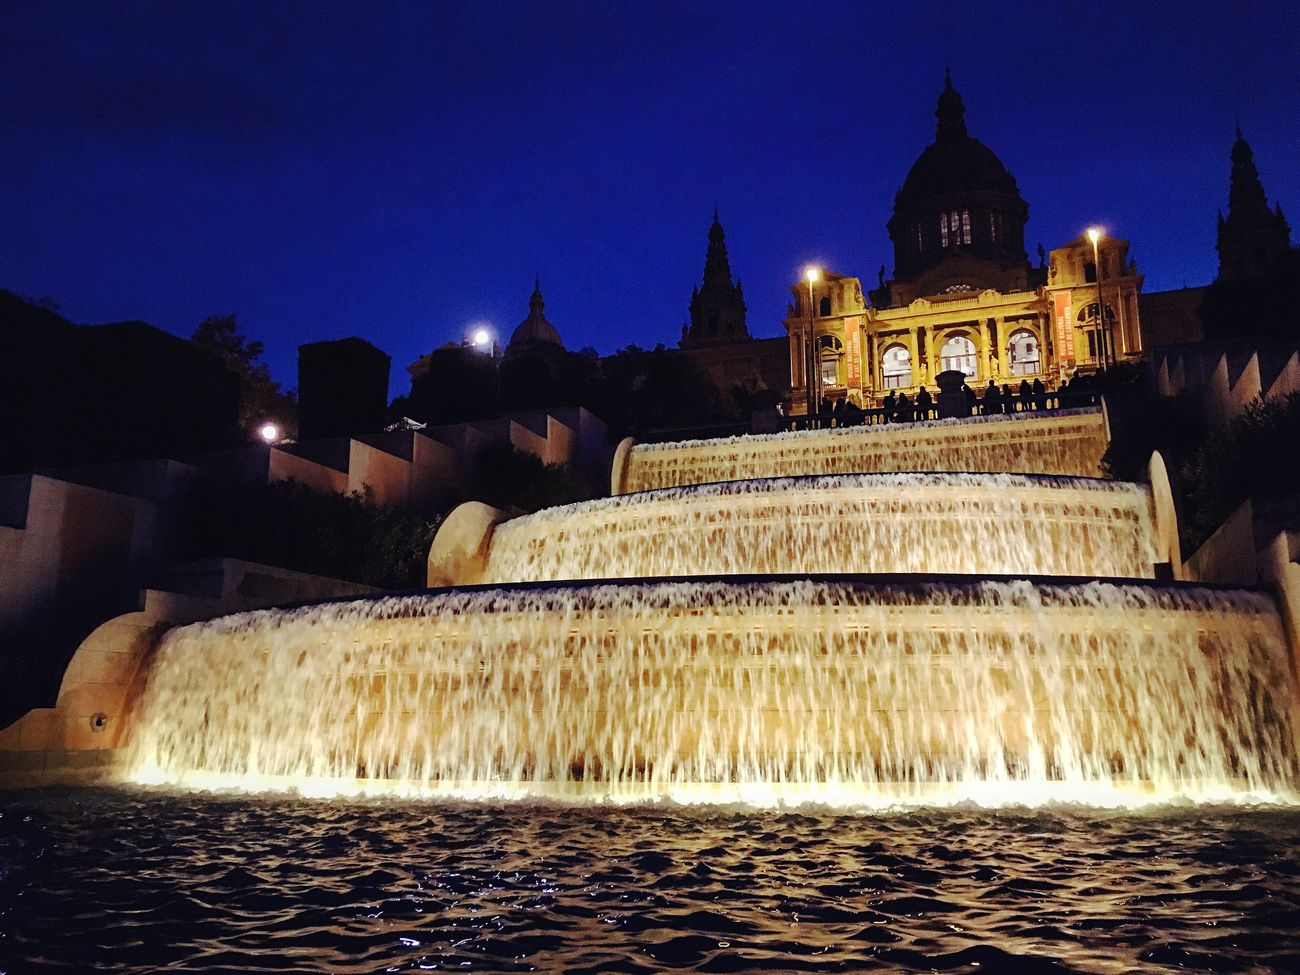 Amazing waterfall fountain before the Museum in Barcelona. Urbanexploration Eye4photography  Showcase: November Nightphotography Fountain Water_collection Walking Around IPhoneography Fresh 3 Seeing The Sights Cities At Night